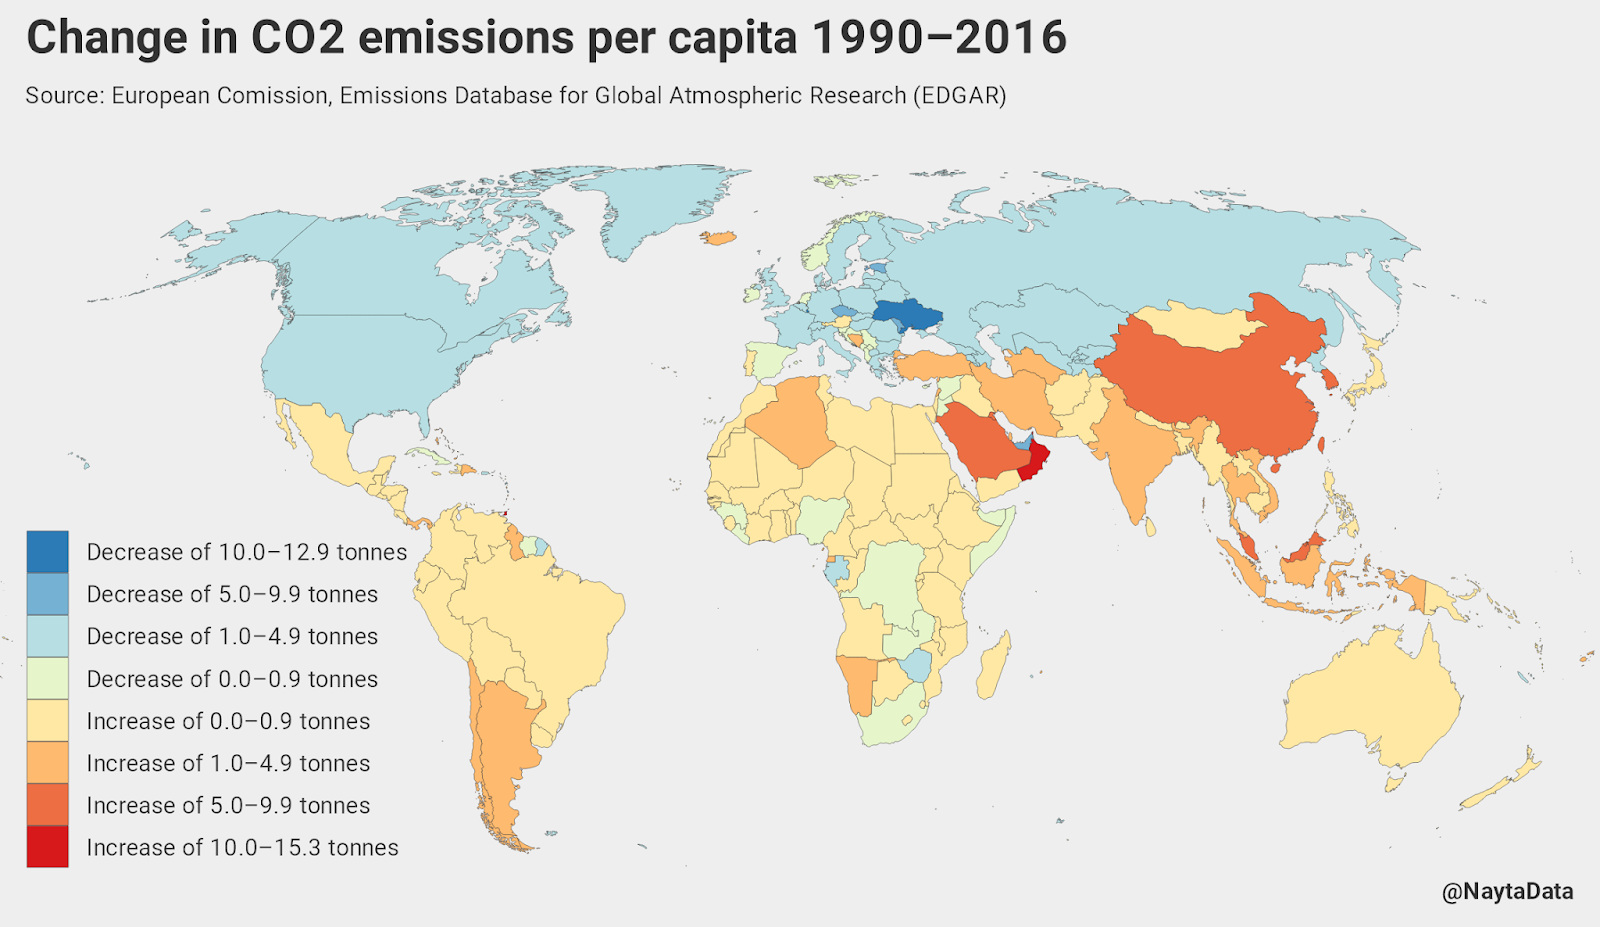 Change in CO2 emissions per capita (1990 - 2016)